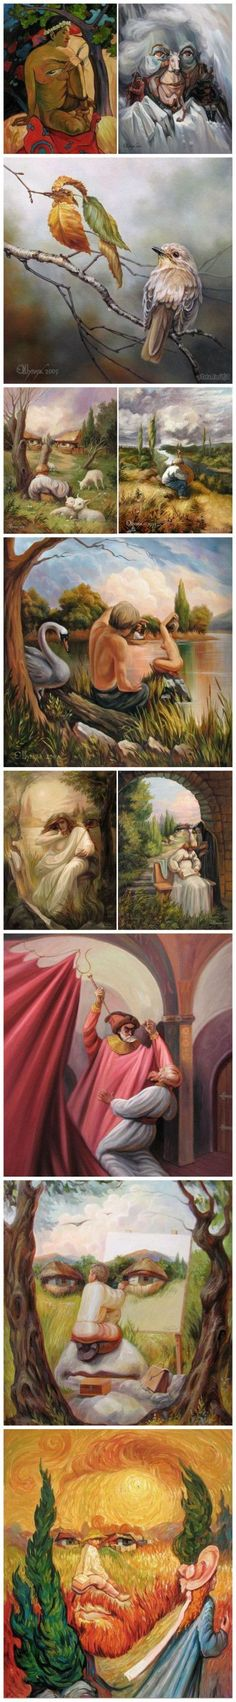 """""""Picture in Picture, Among the People"""" from Ukrainian artist Oleg Shuplyak/ I used to love these 'image within image' works when I was young. :):"""